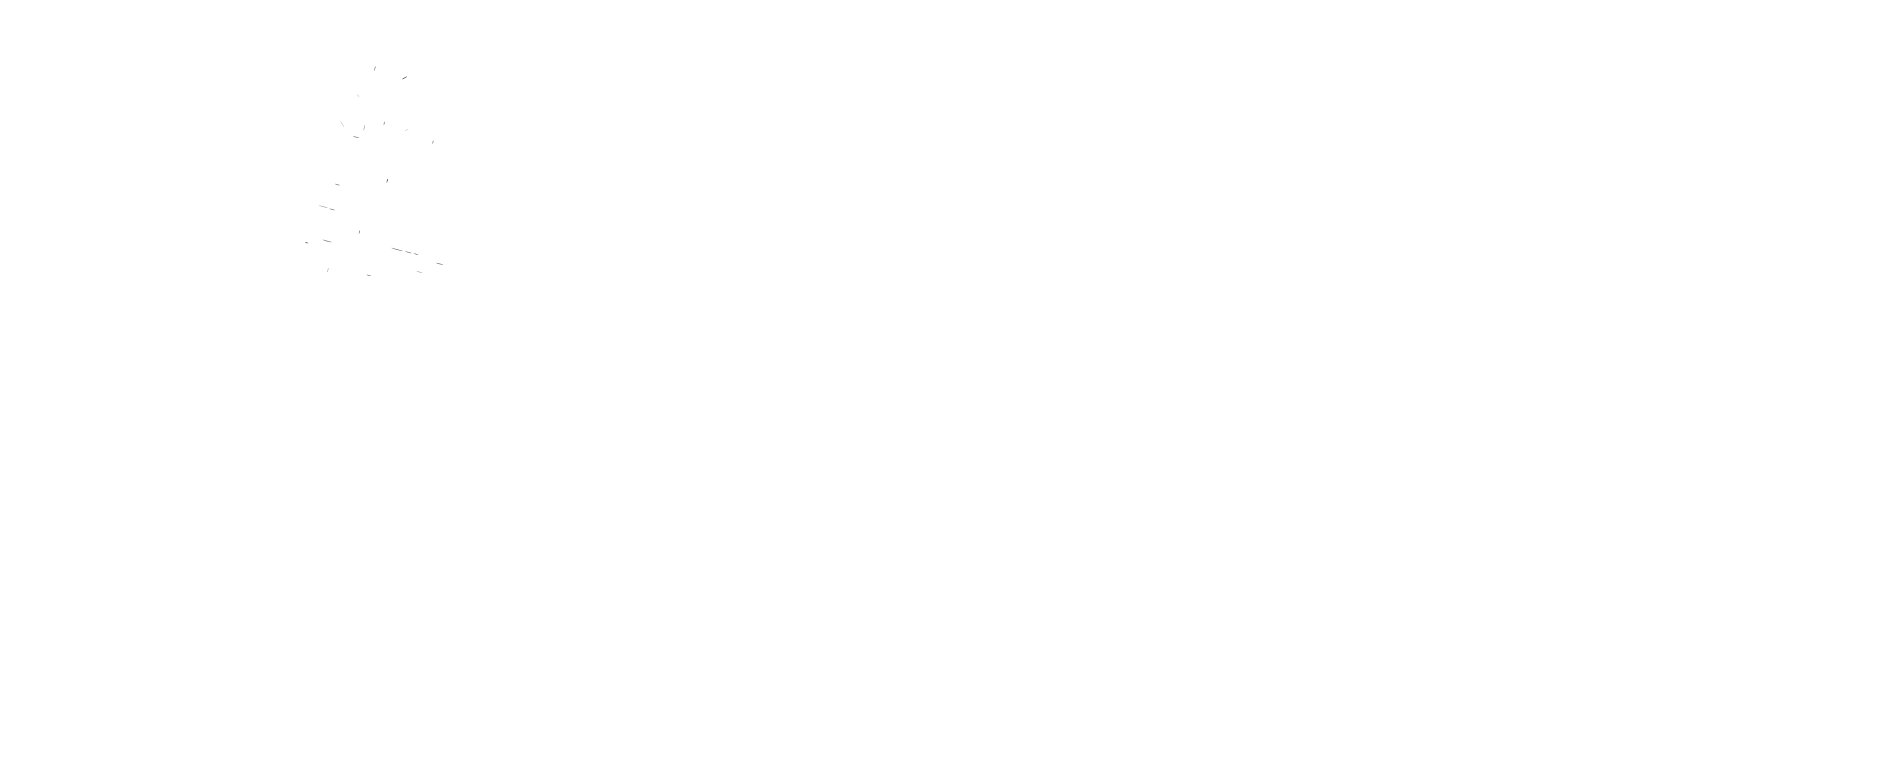 Southern Forestry & Wildlife